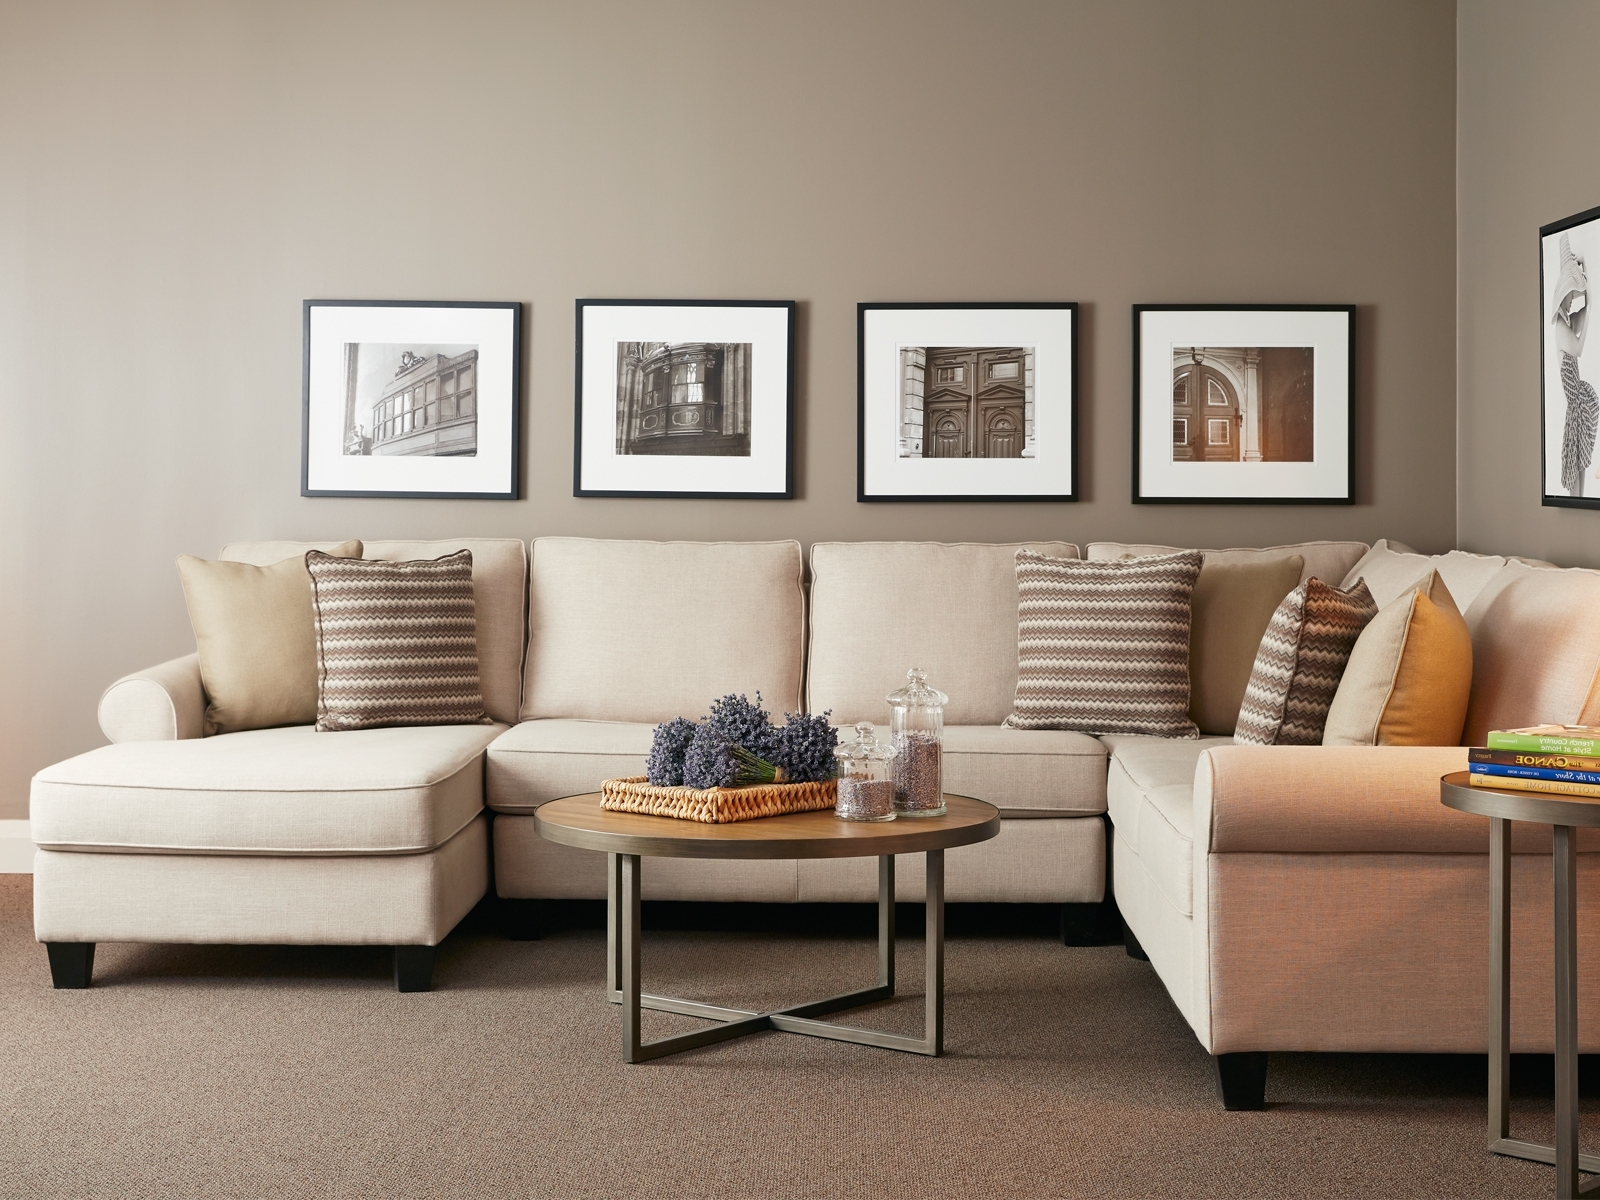 Brentwood Classics With Regard To Ontario Canada Sectional Sofas (View 5 of 15)